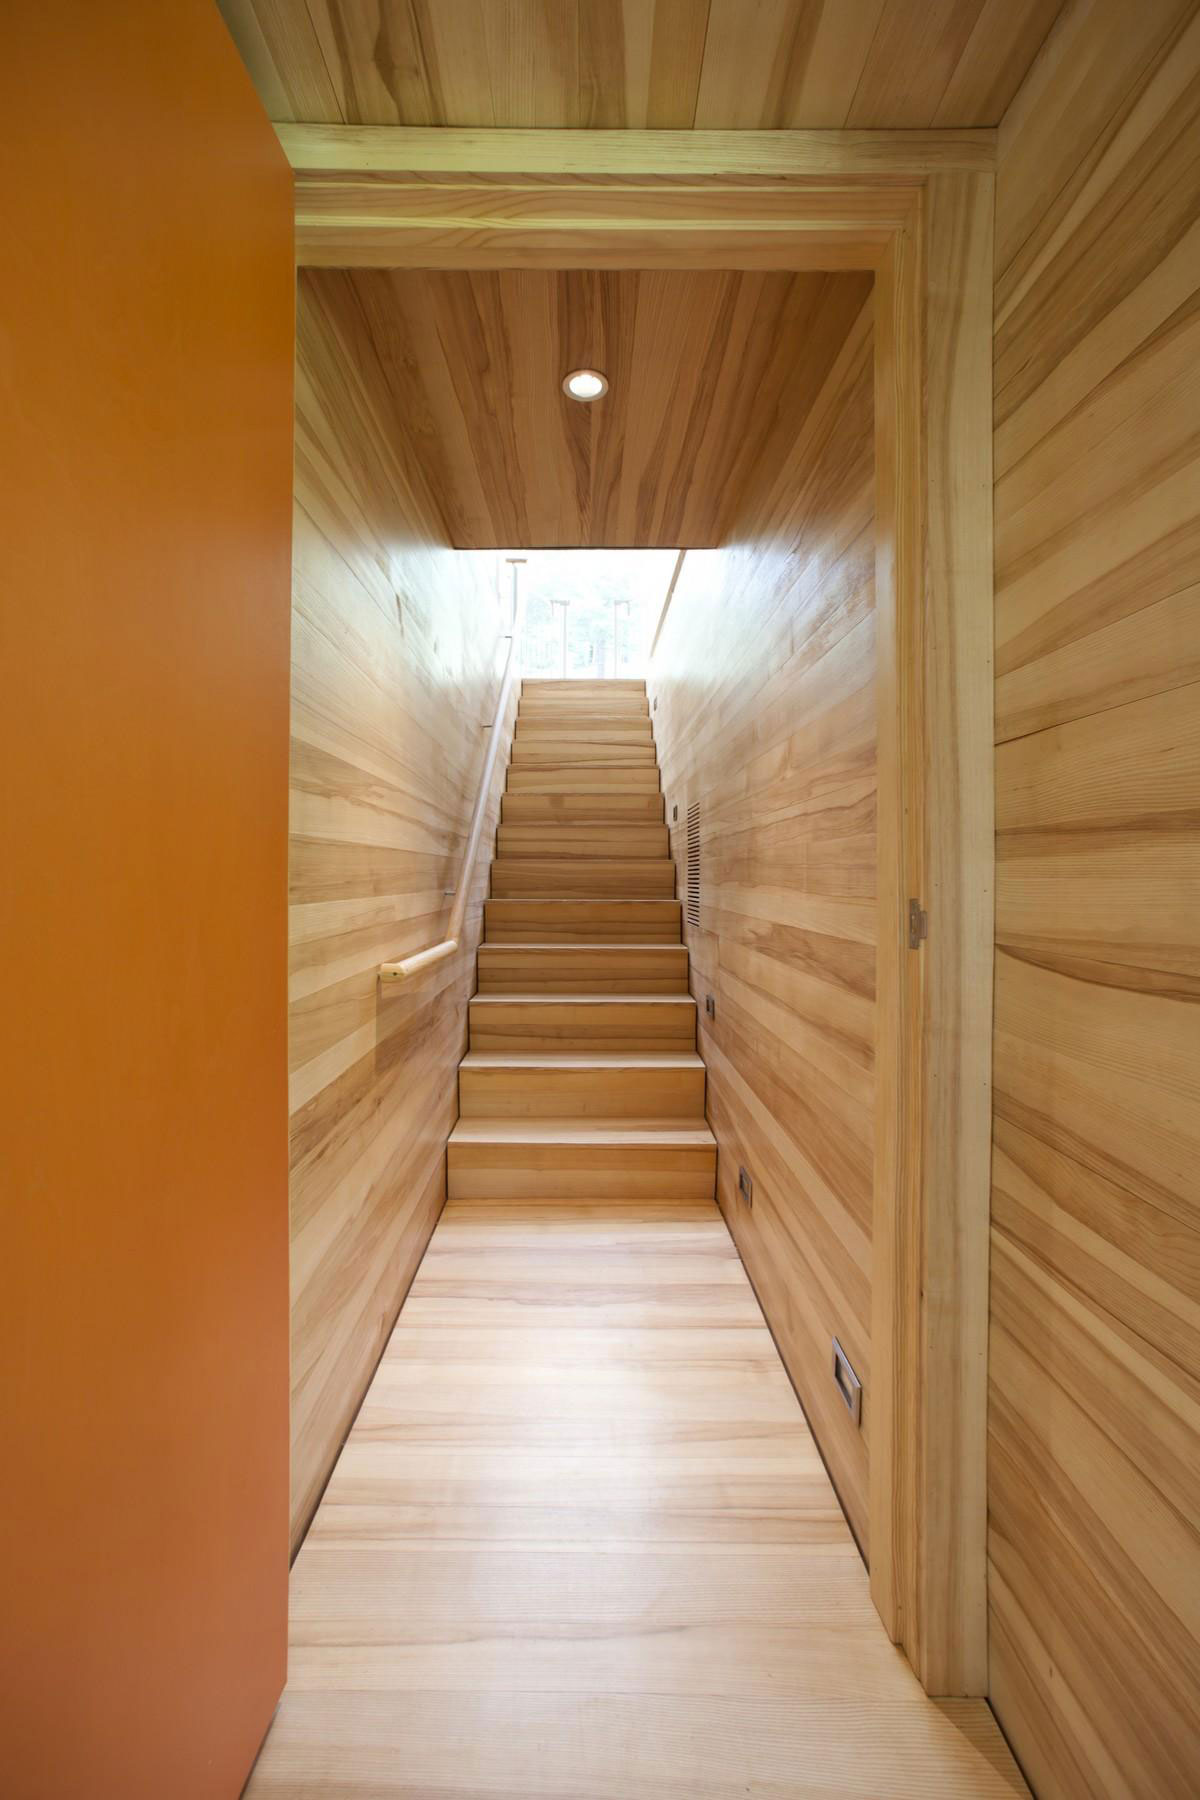 Wooden Stairs, Rural Retreat in Bantam, Connecticut